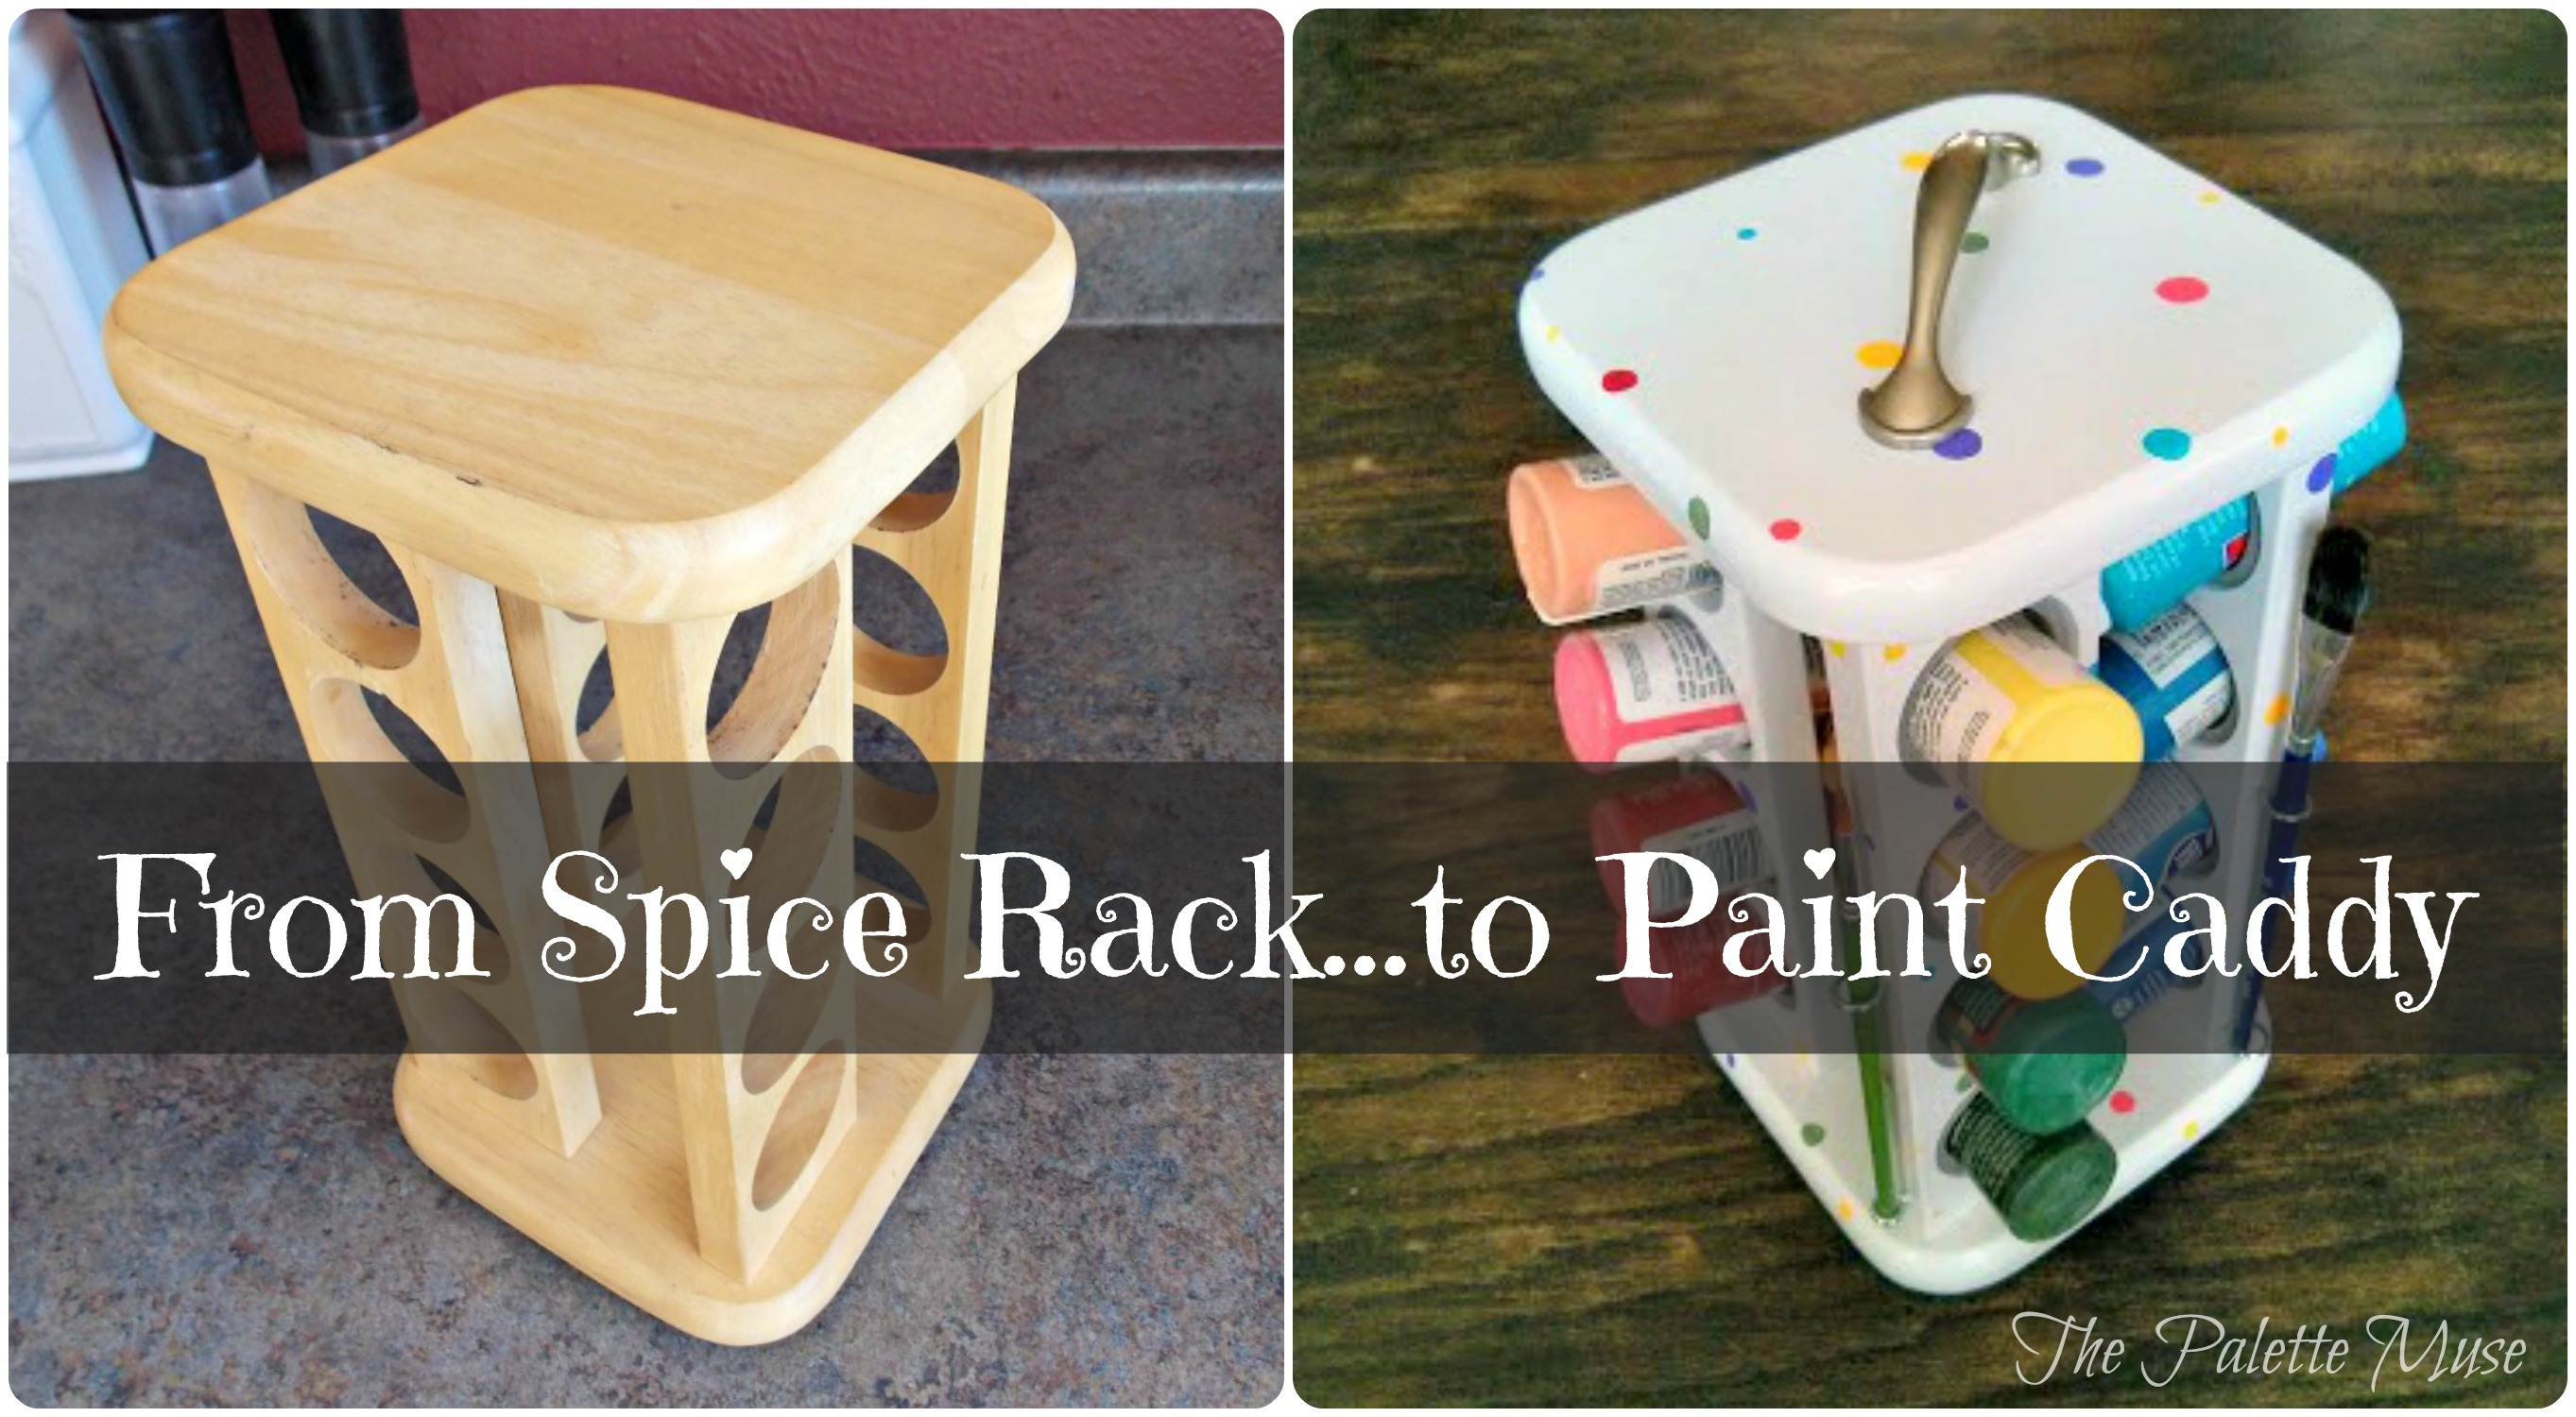 Spice Rack To Paint Caddy - HMLP Feature